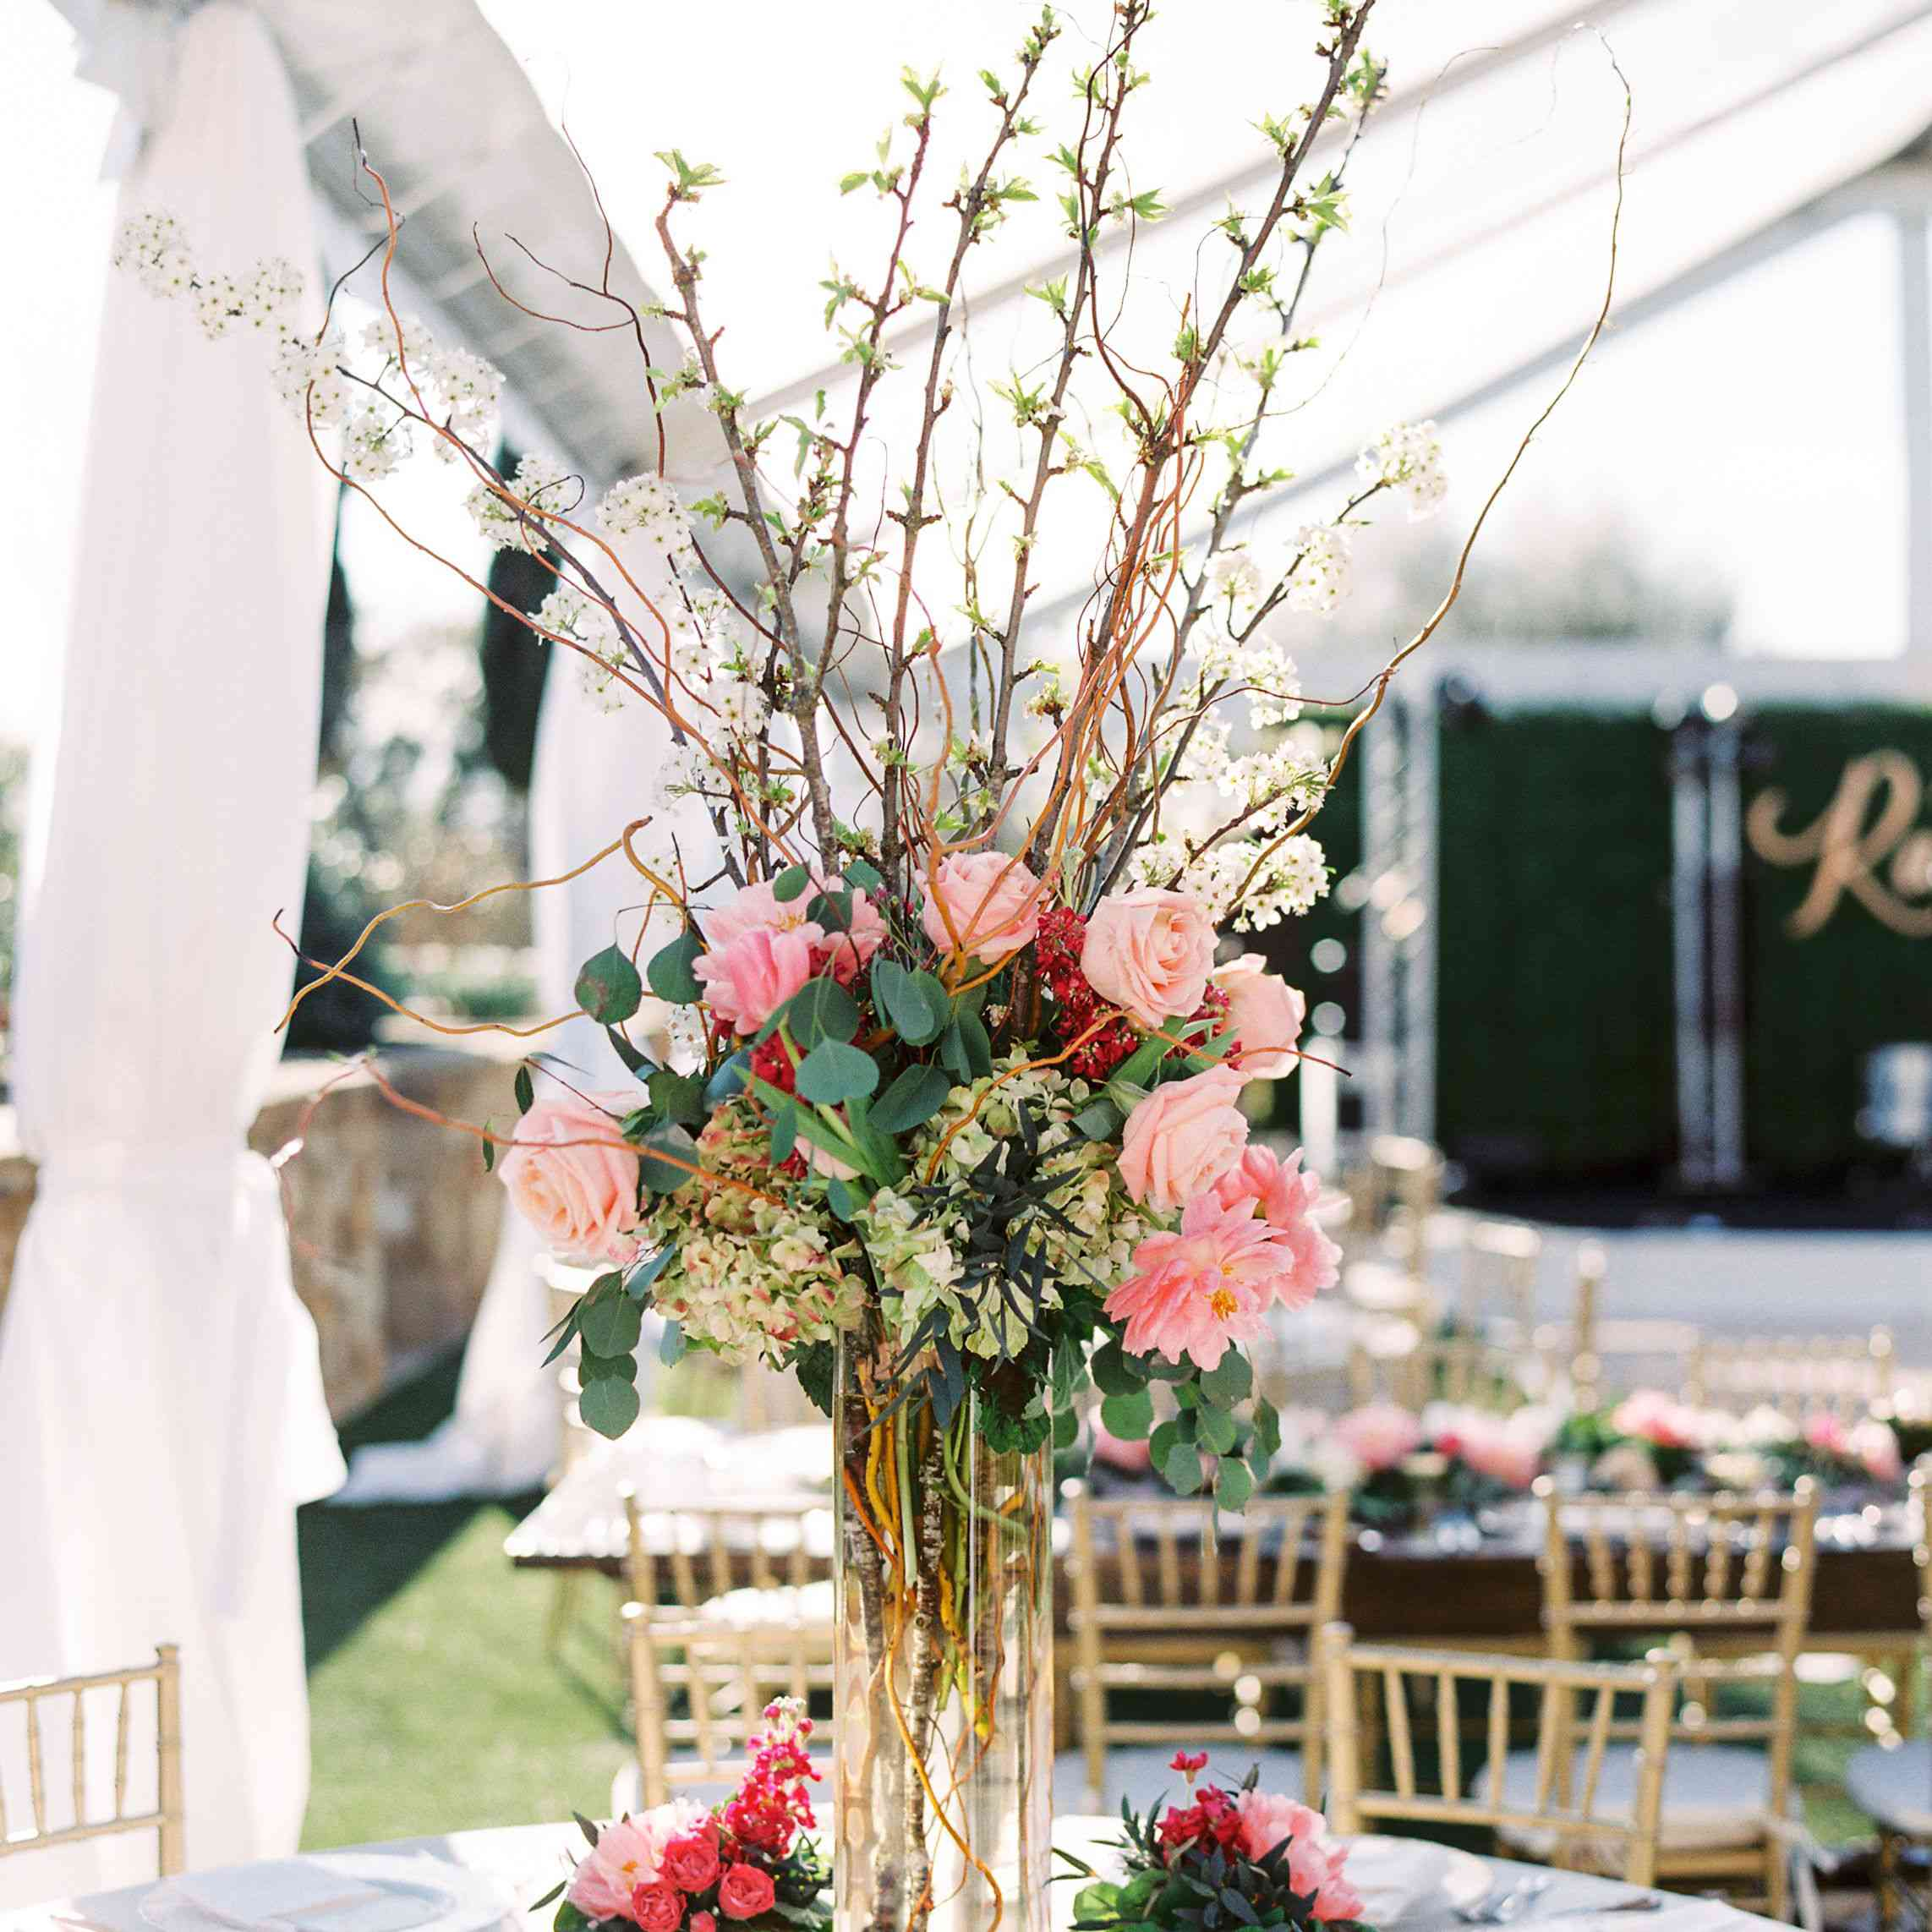 Wedding centerpiece with branches